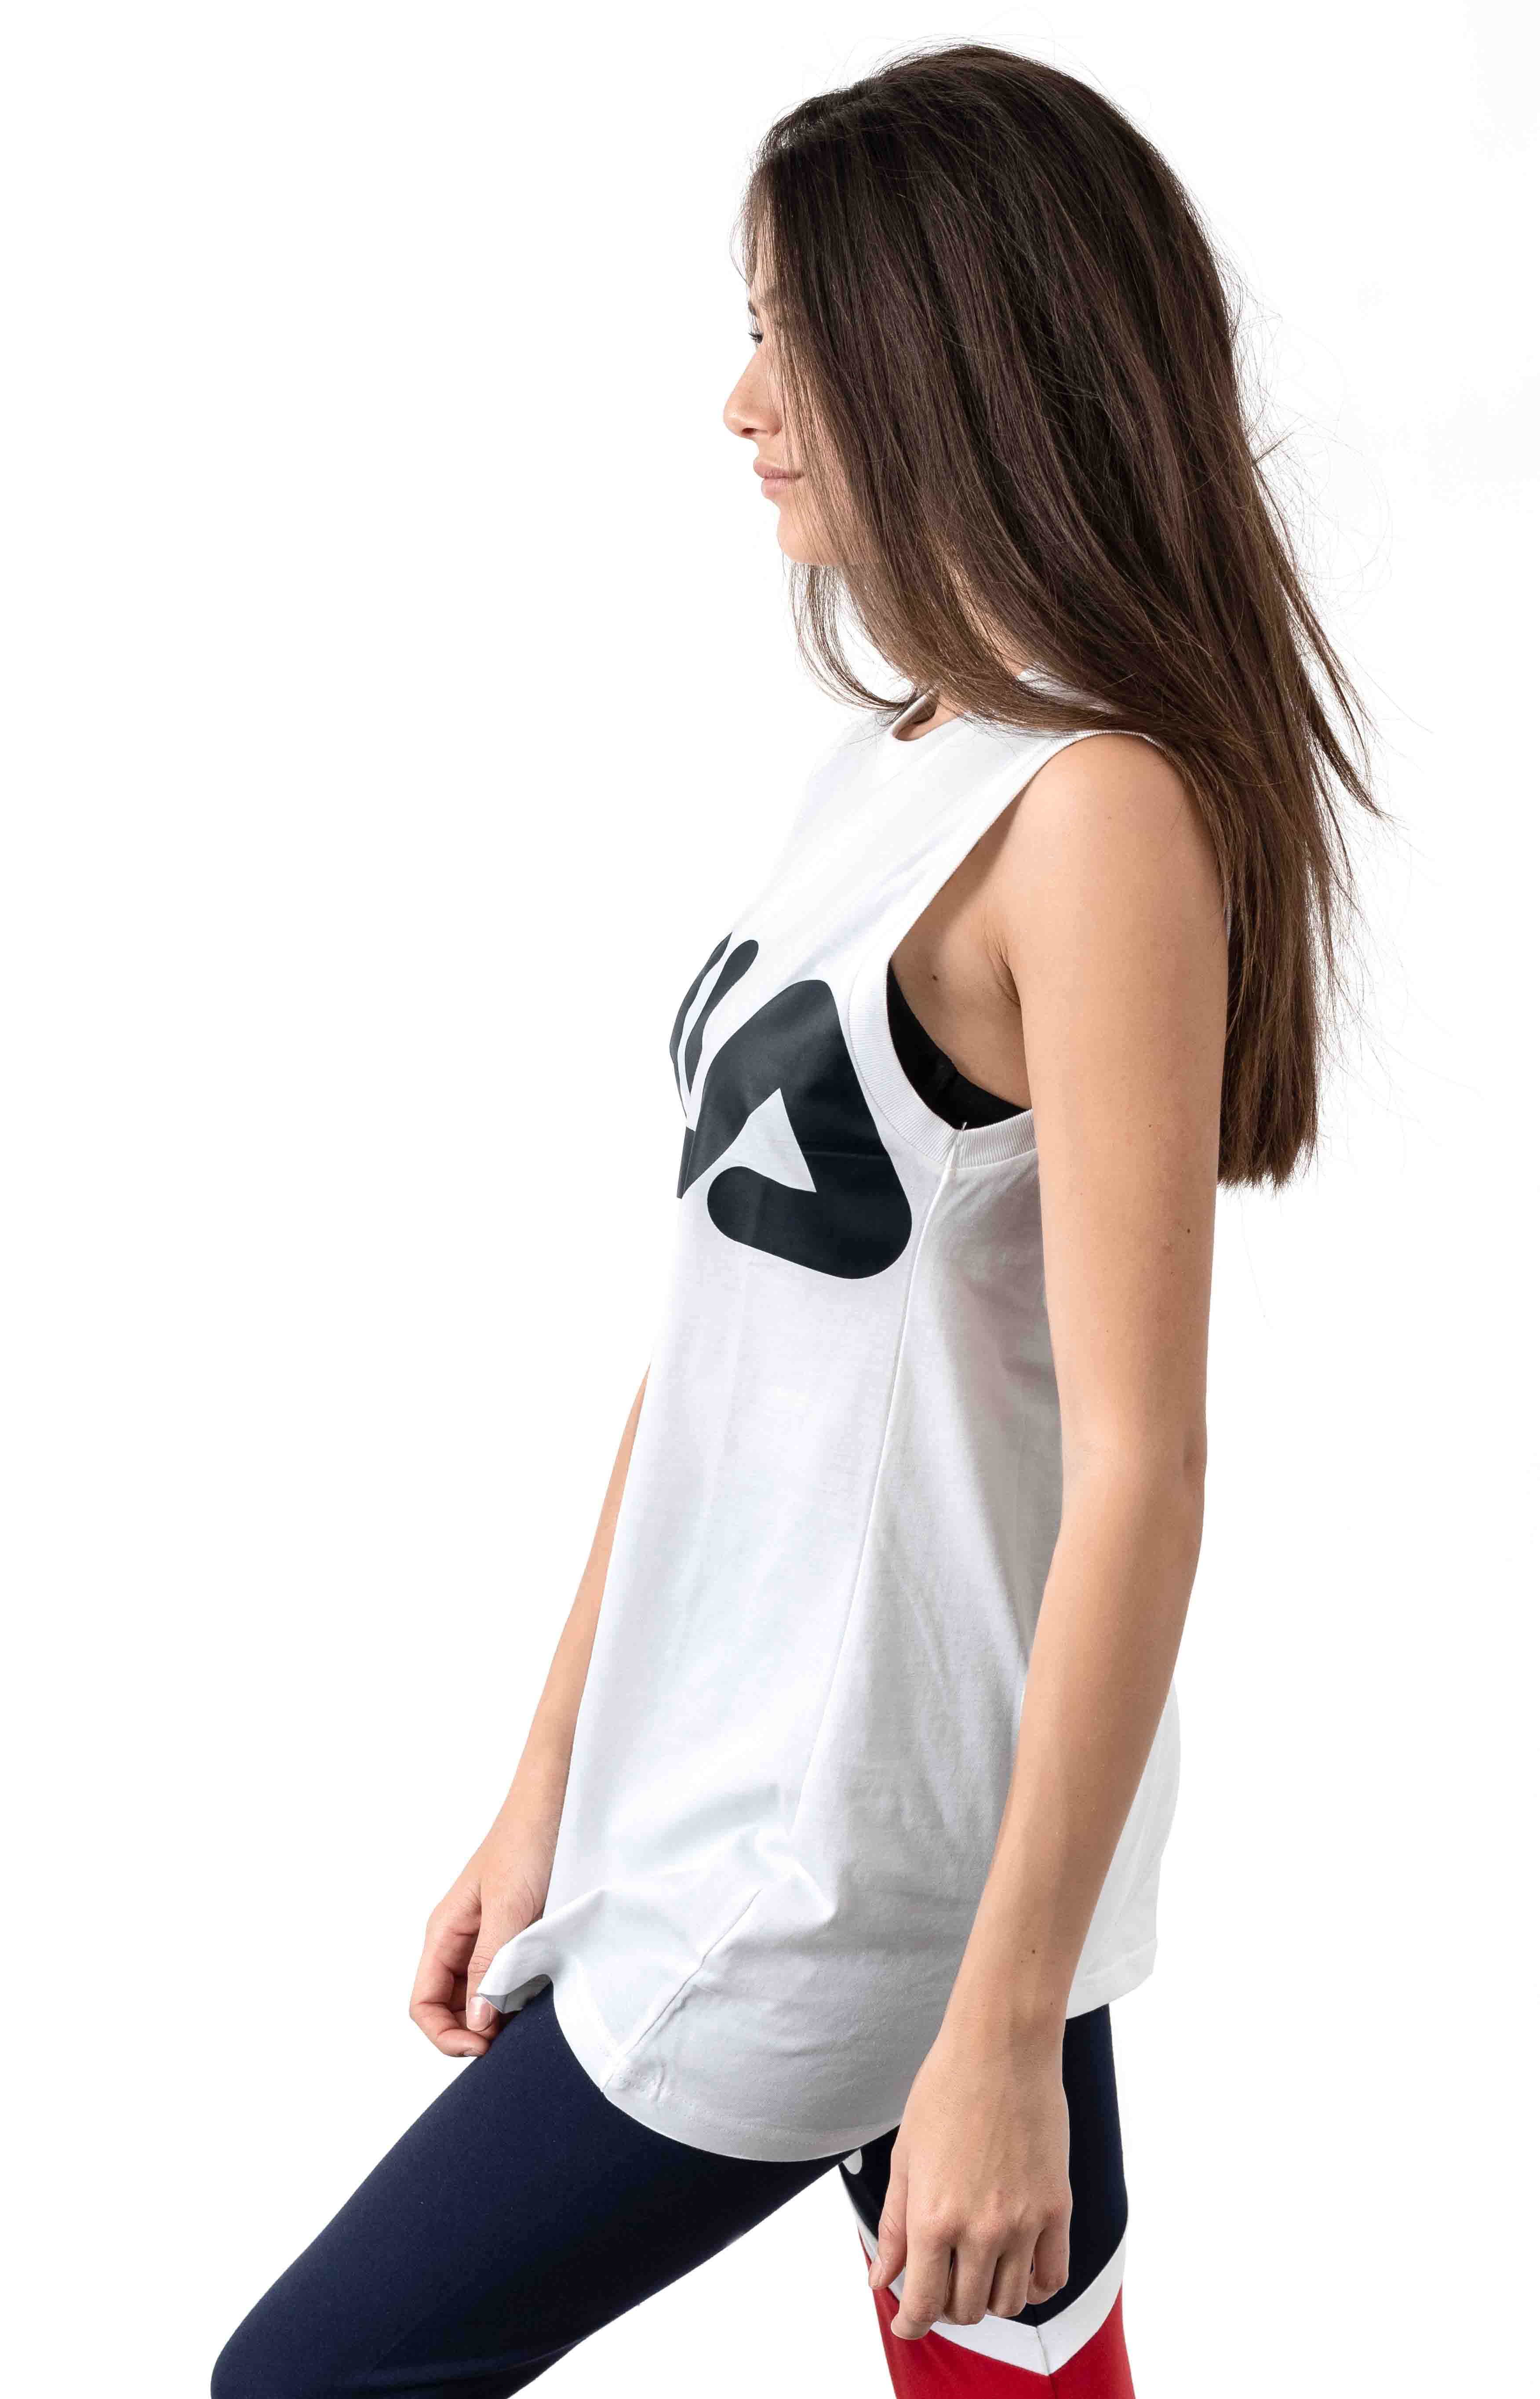 Sesto Sleeveless Tee - White 2